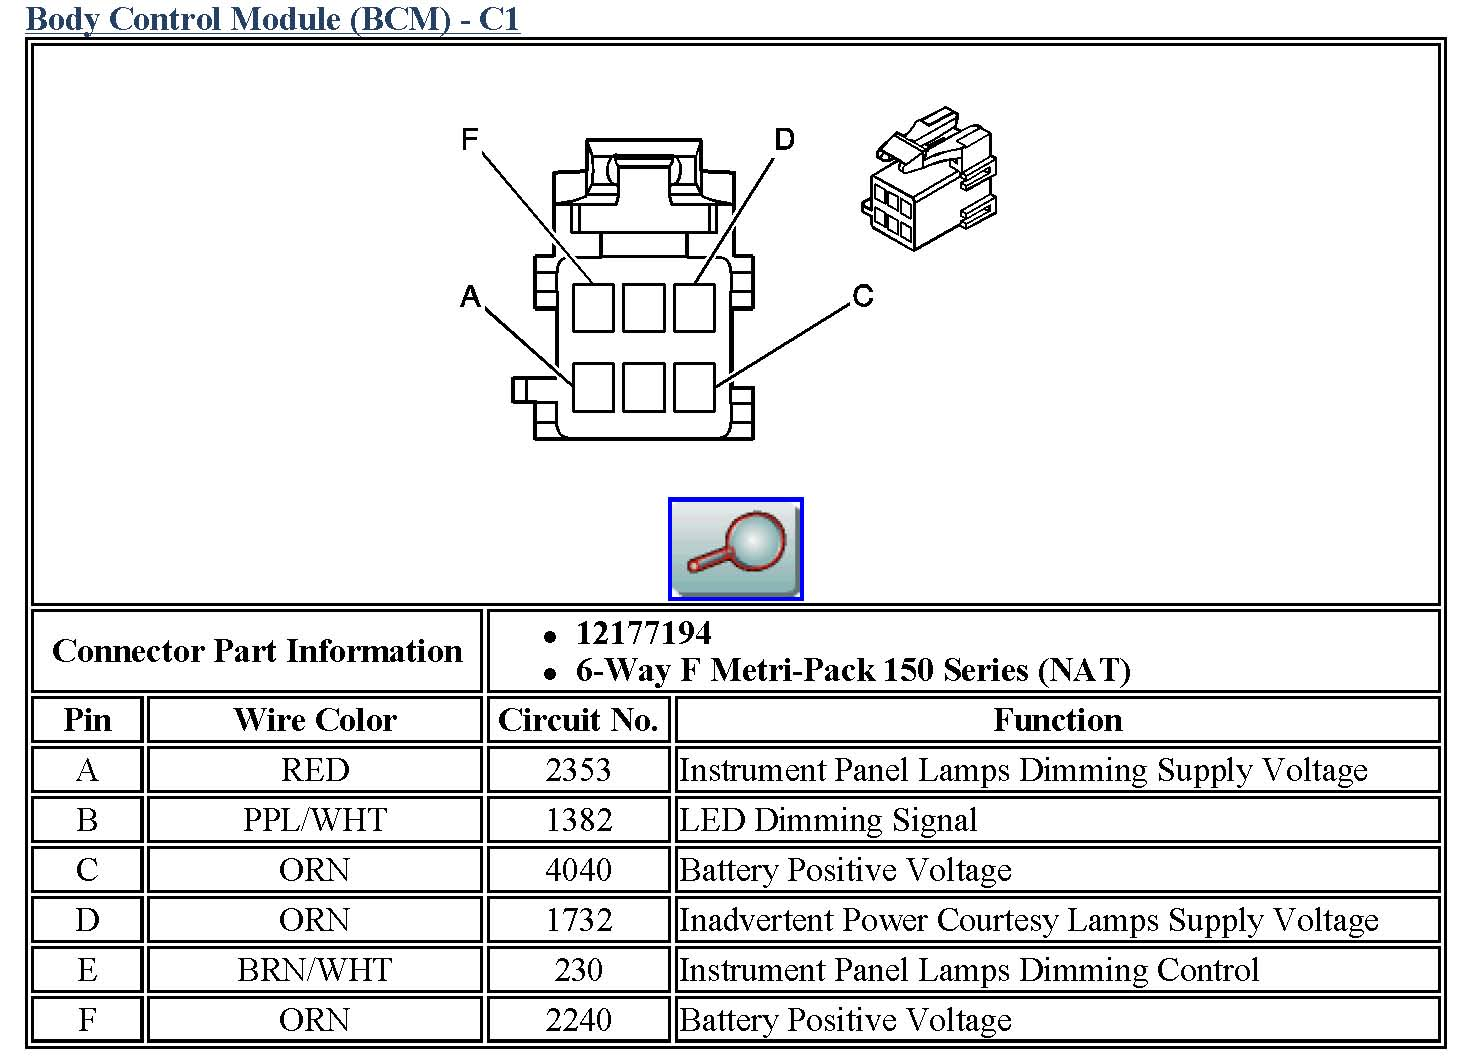 2011 Sierra Fuse Box Diagram Data Wiring Diagrams Gmc Terrain Bcm Basics 101 03 06 Savana Yukon